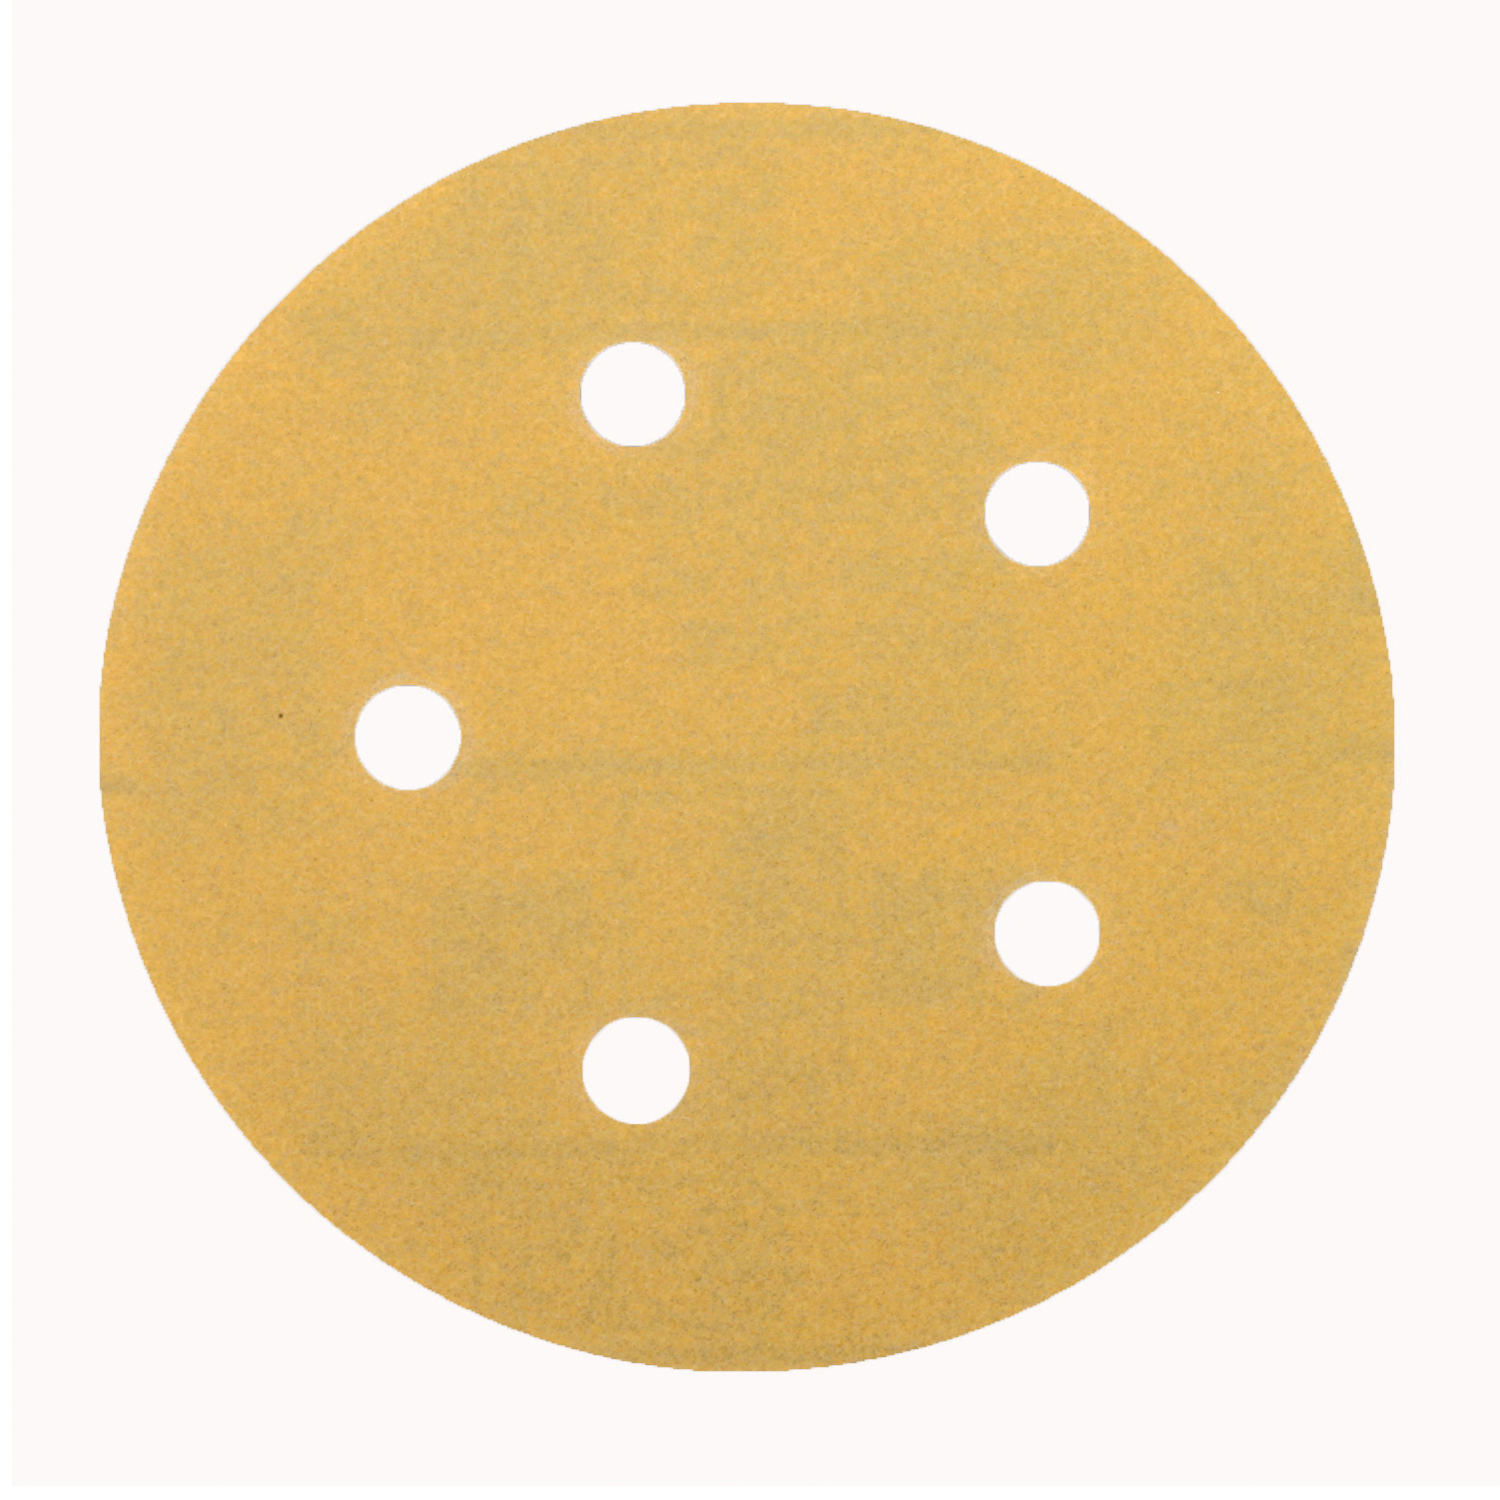 3M™ Hookit™ 051144-86249 216U Open Coated Abrasive Abrasive Disc, 5 in Dia Disc, P320 Grit, Very Fine Grade, Aluminum Oxide Abrasive, Paper Backing